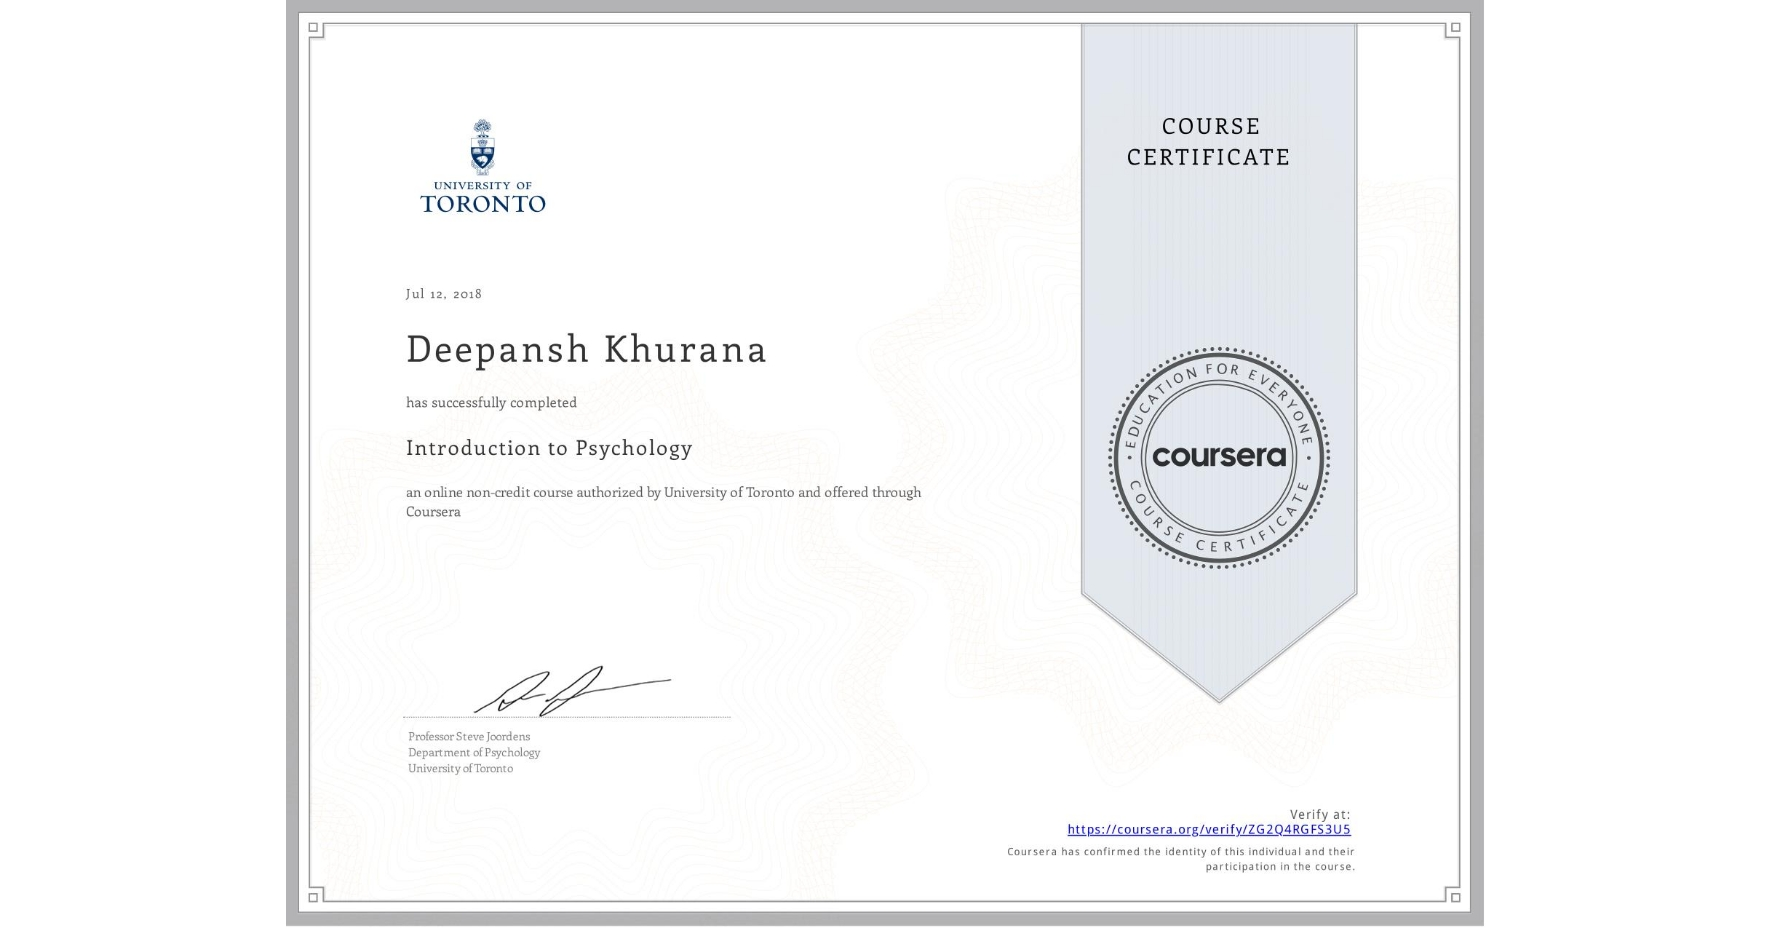 View certificate for Deepansh Khurana, Introduction to Psychology, an online non-credit course authorized by University of Toronto and offered through Coursera